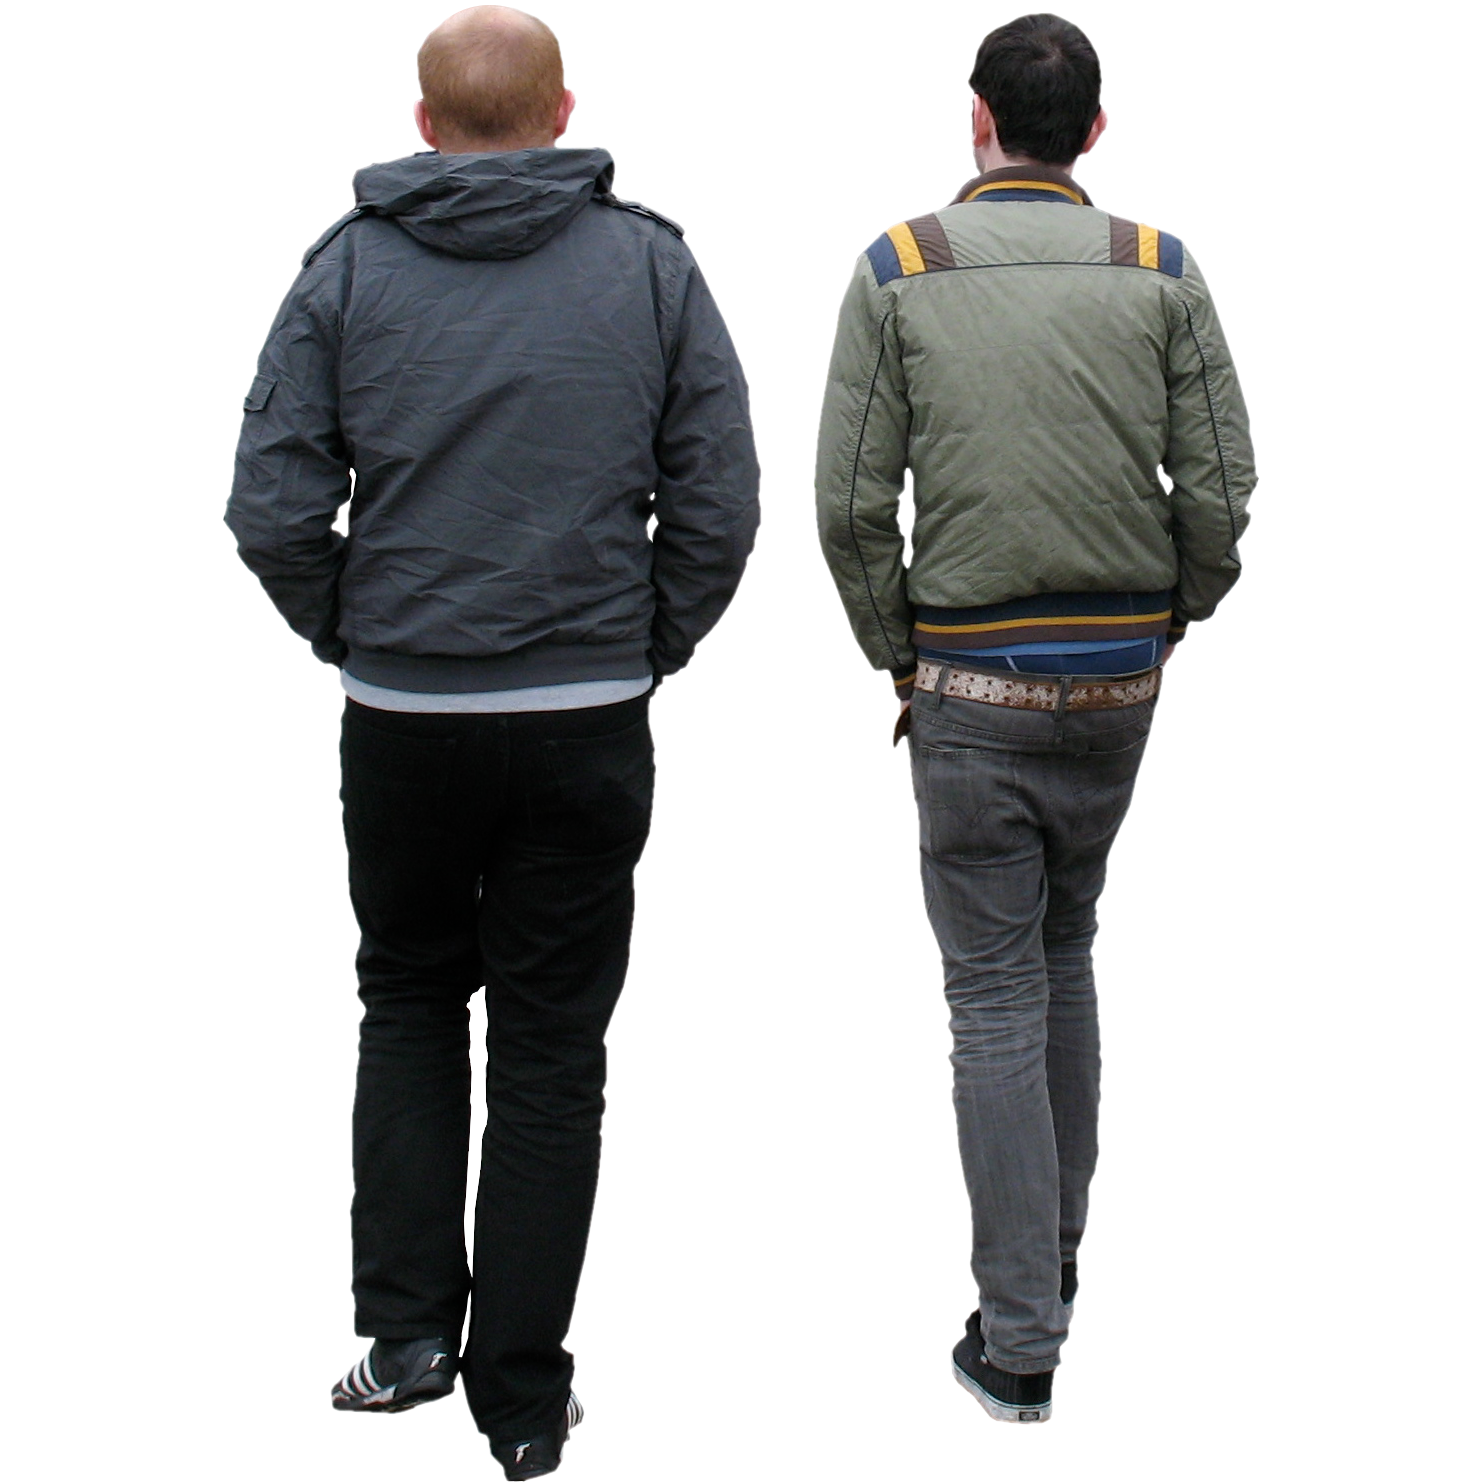 Person walking away png. Transparent images pluspng people